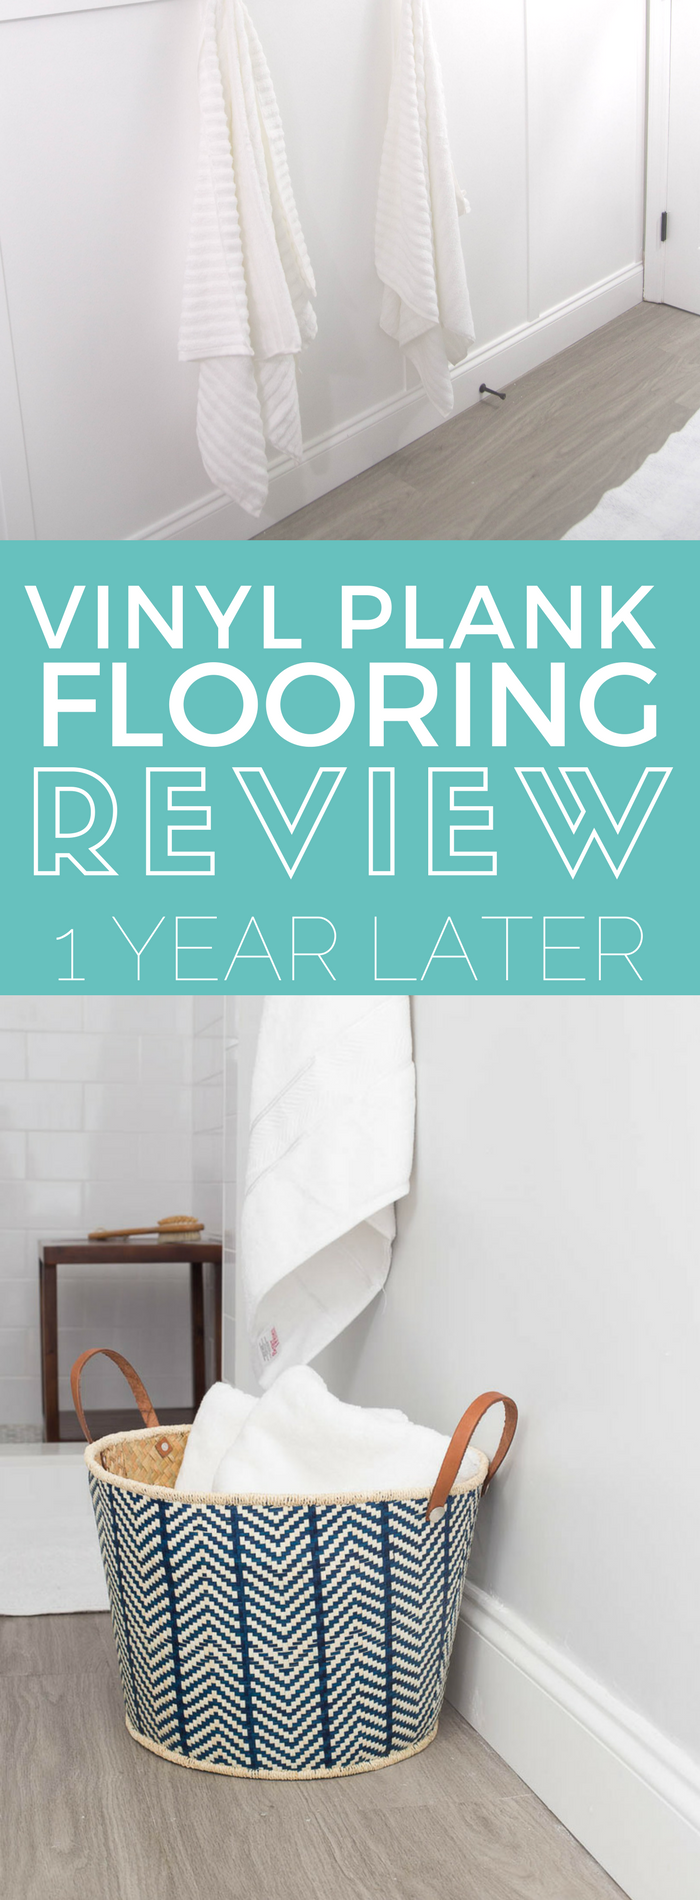 Vinyl Plank Review - 1 year later